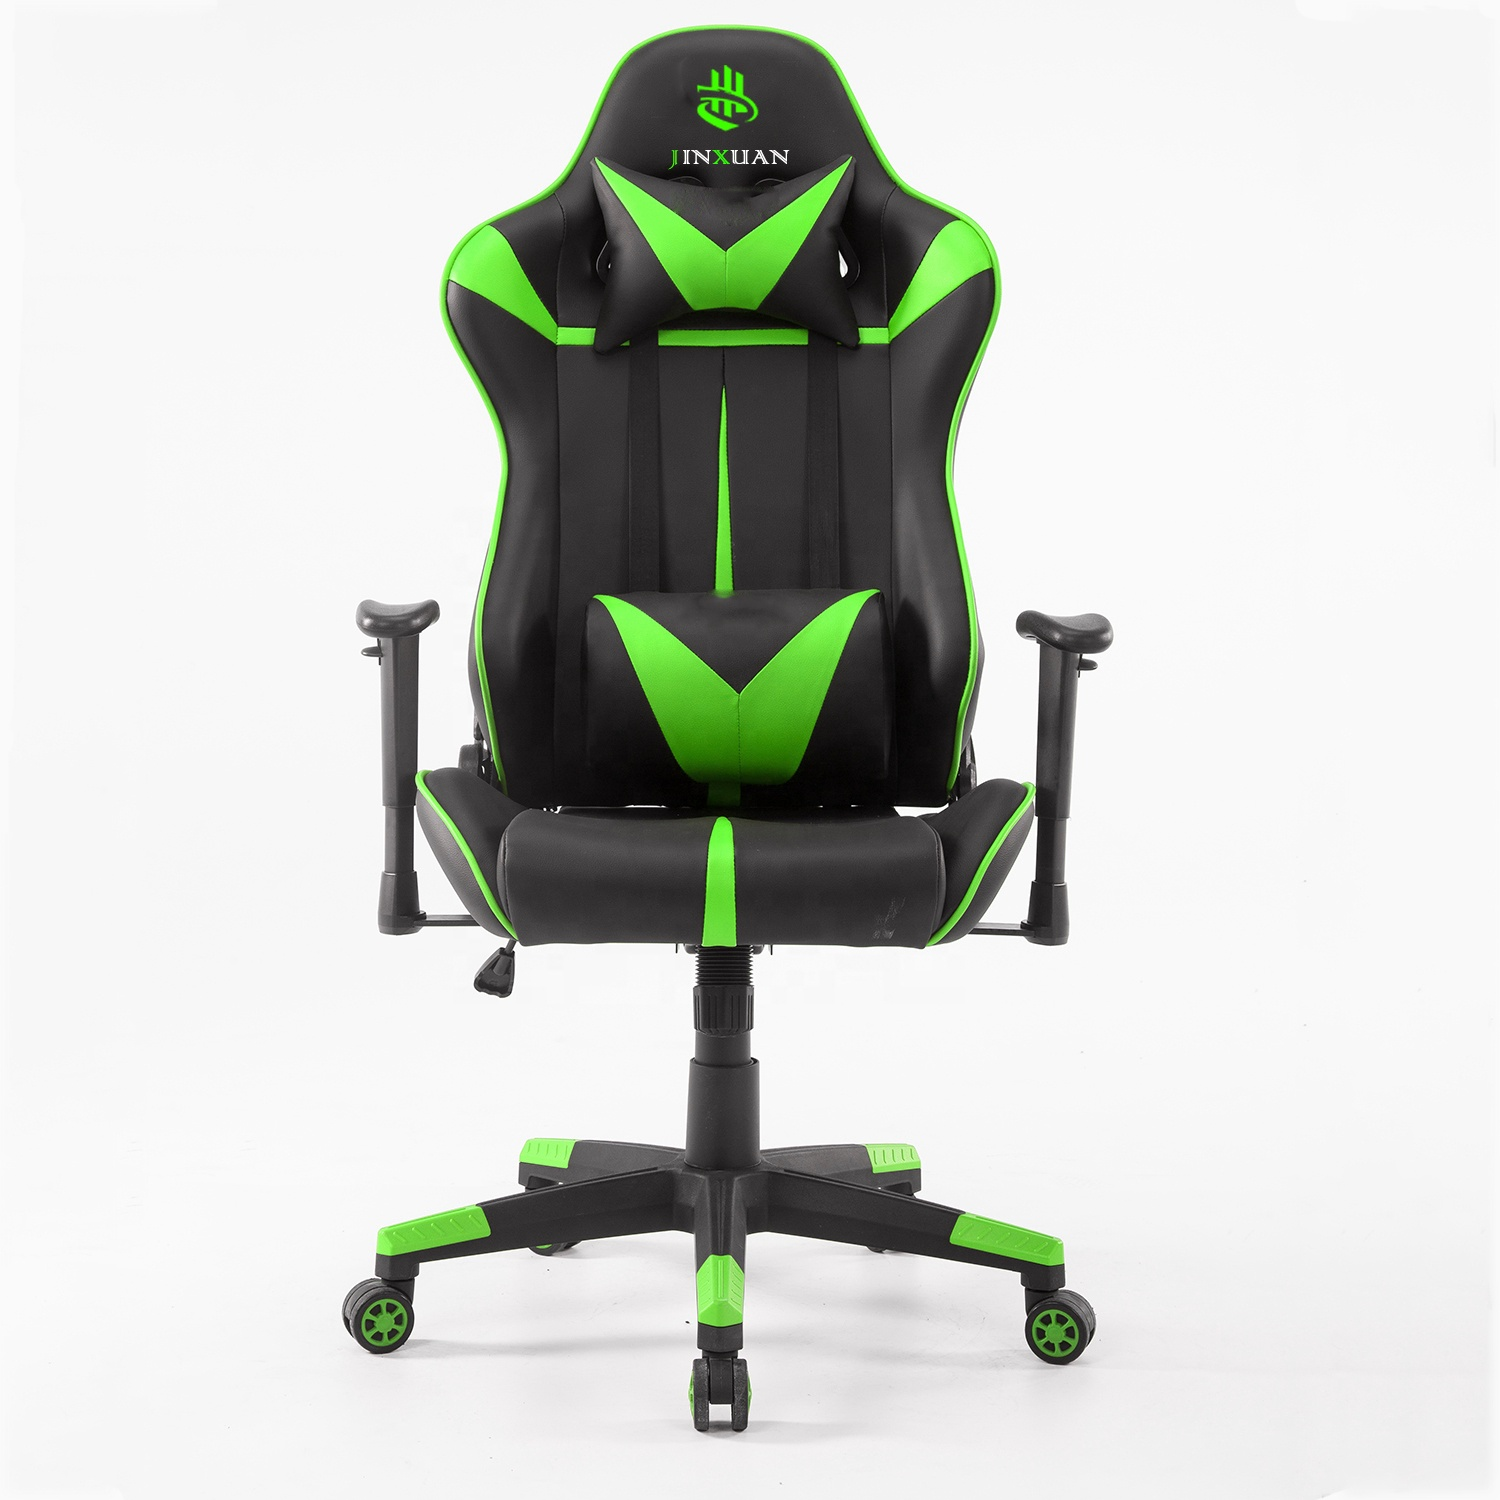 Incredible China Razer Chair China Razer Chair Manufacturers And Dailytribune Chair Design For Home Dailytribuneorg